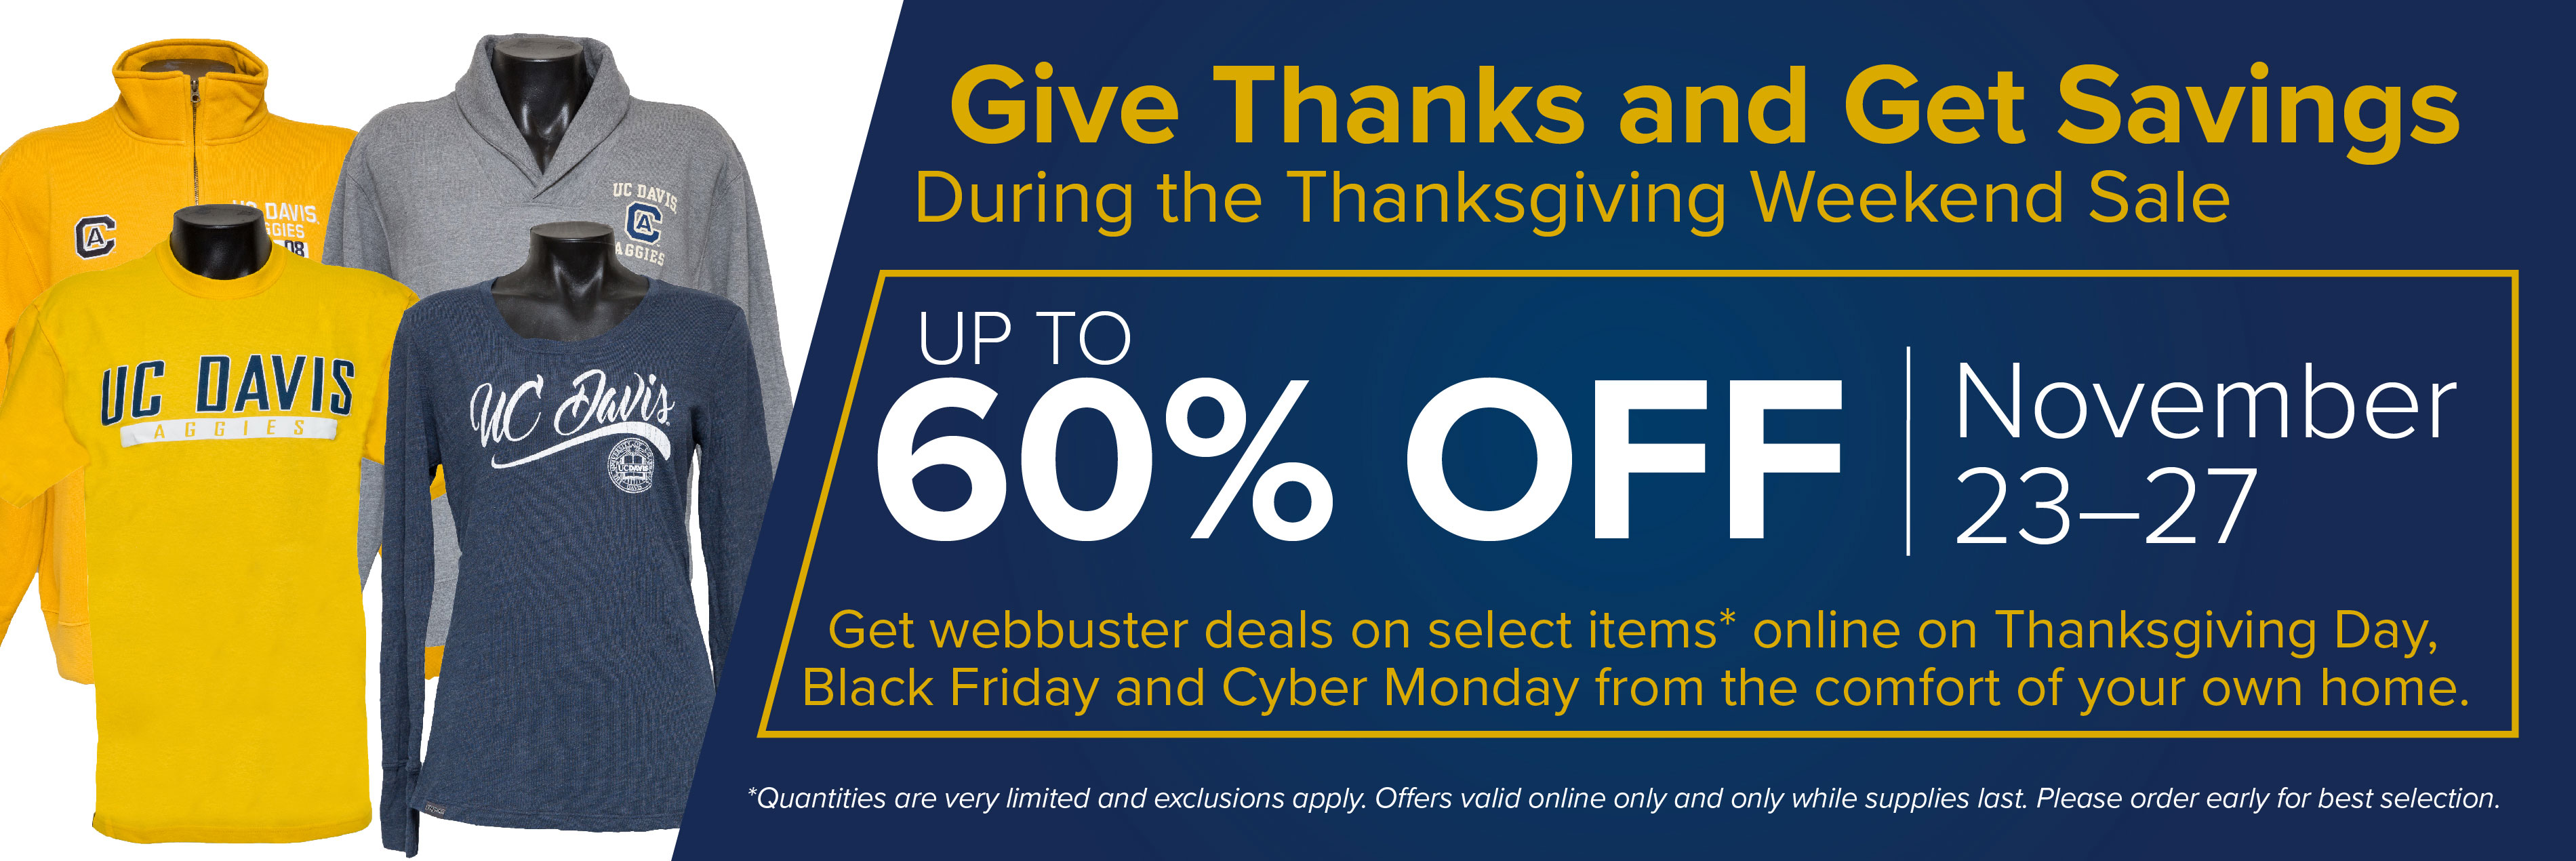 Start planning now for savings during the UC Davis Stores Thanksgiving Day sale